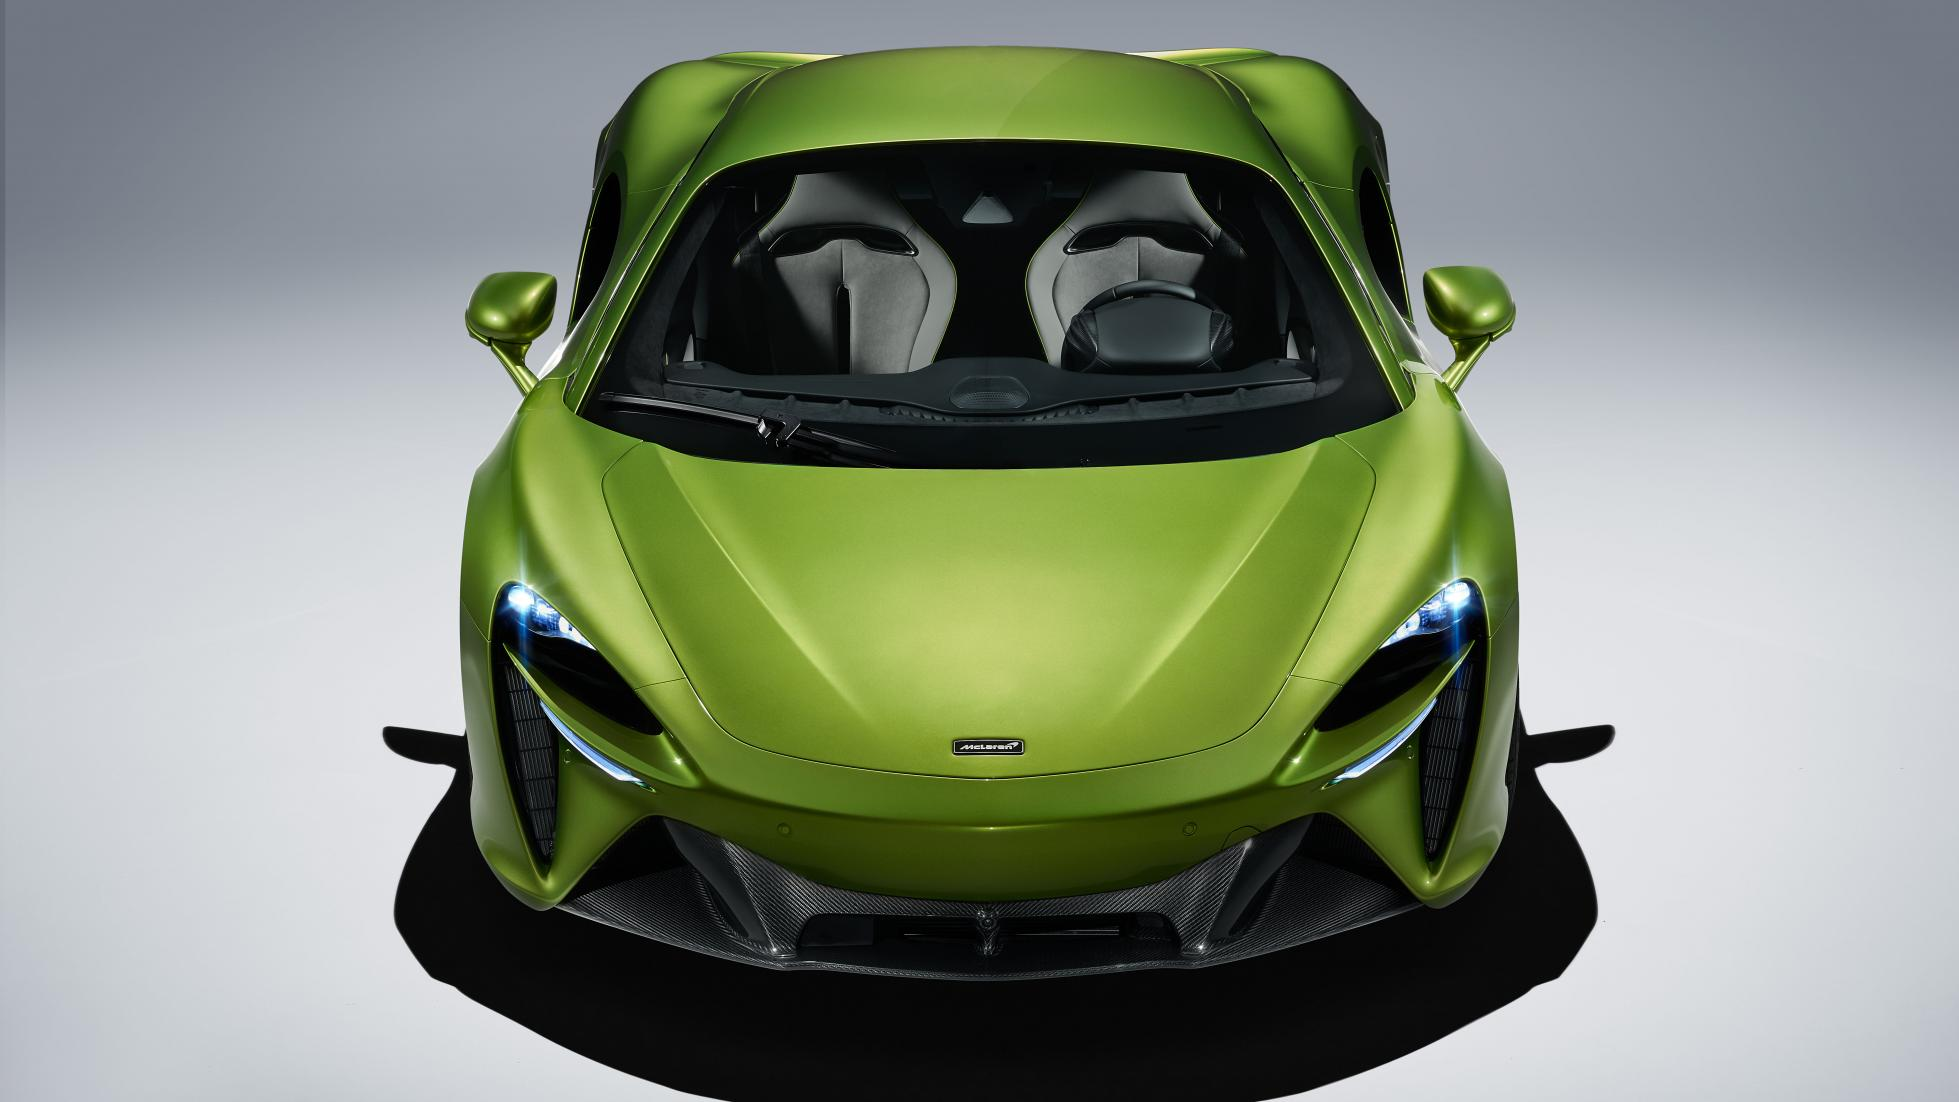 McLaren Artura in Flux Green front top view